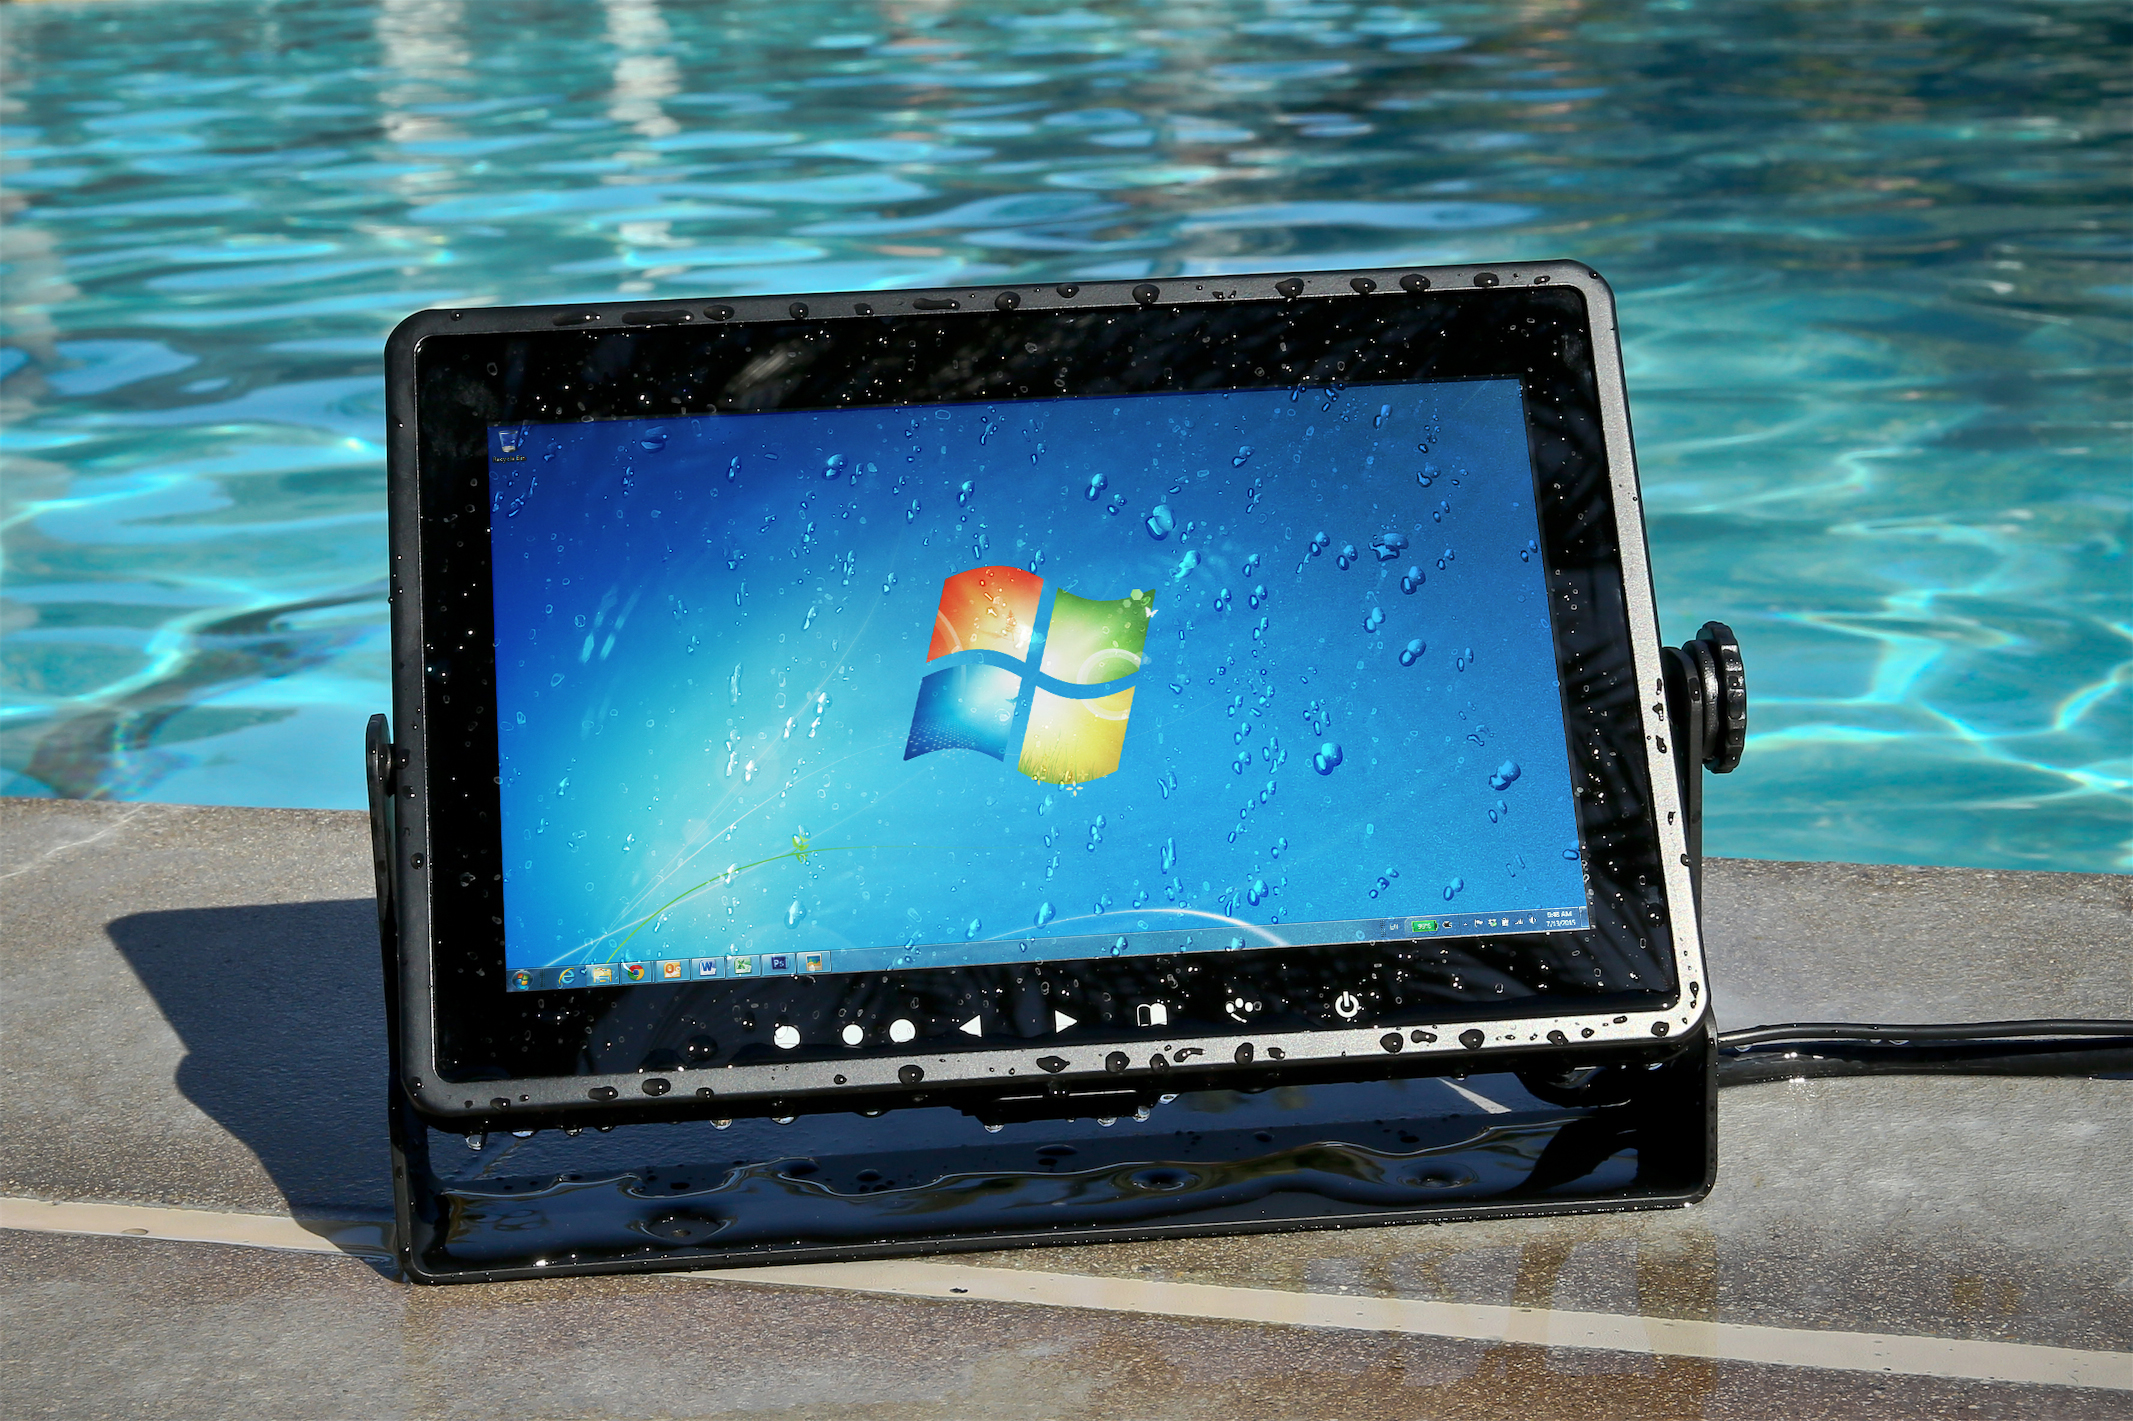 Ruggedized Marine Touch Screen Solutions for Watercraft Vessel & Commercial Vessel Manufacturers